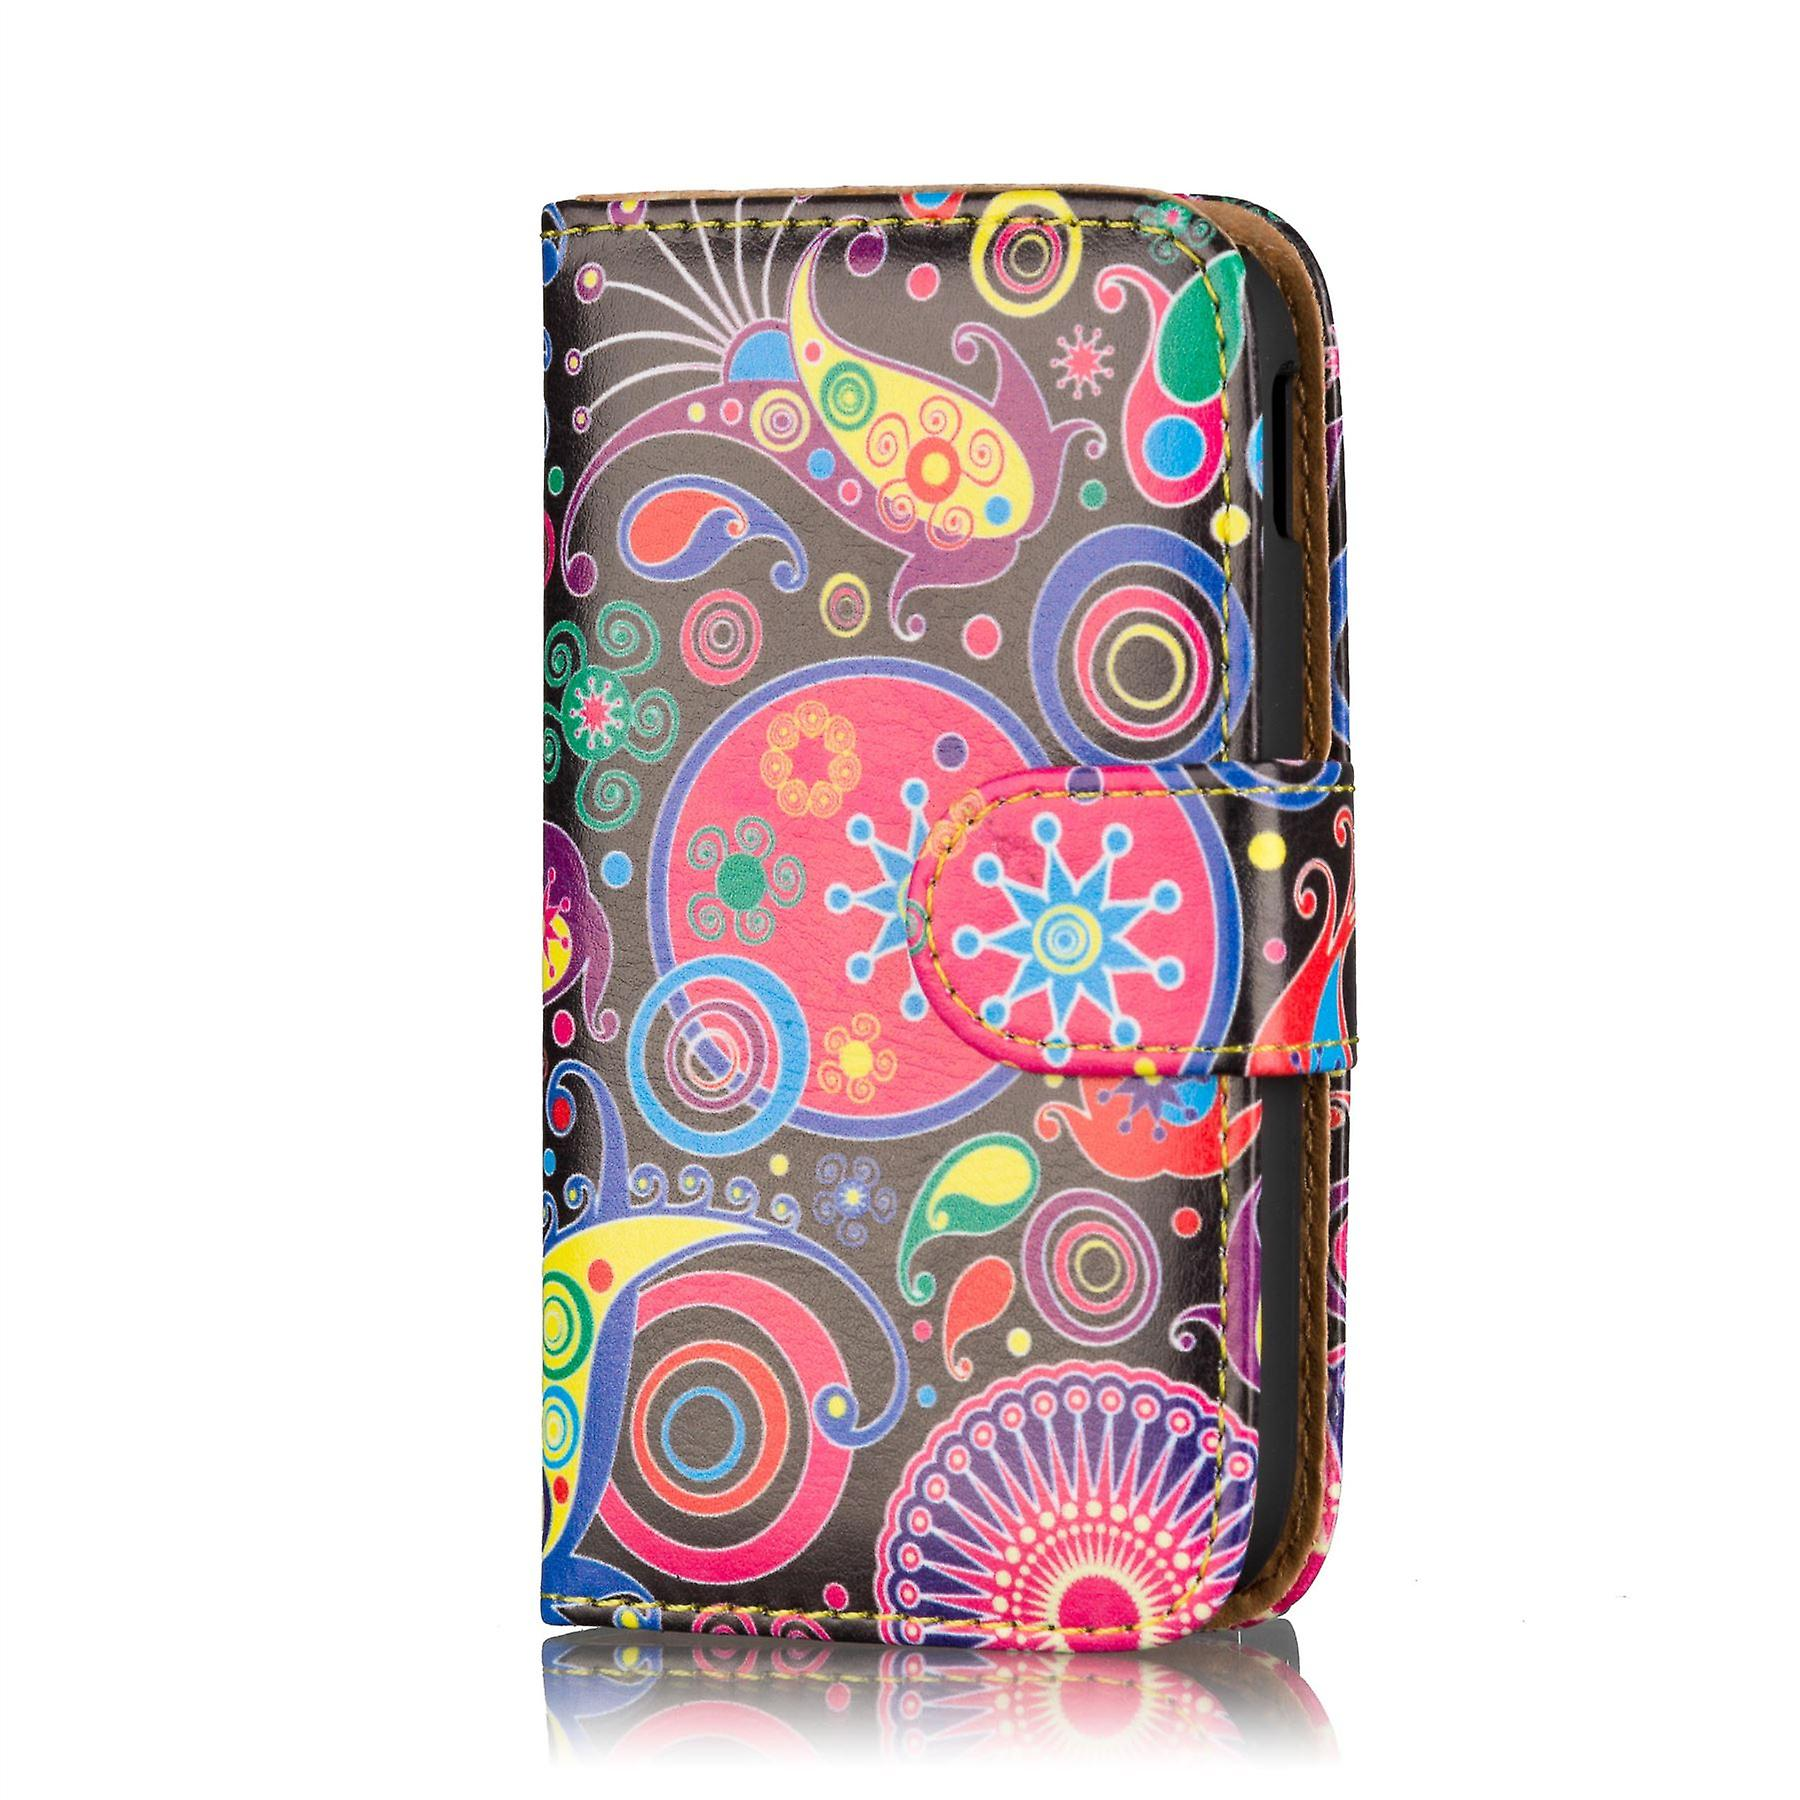 Design book case for Sony Xperia Z5 Compact - Jellyfish